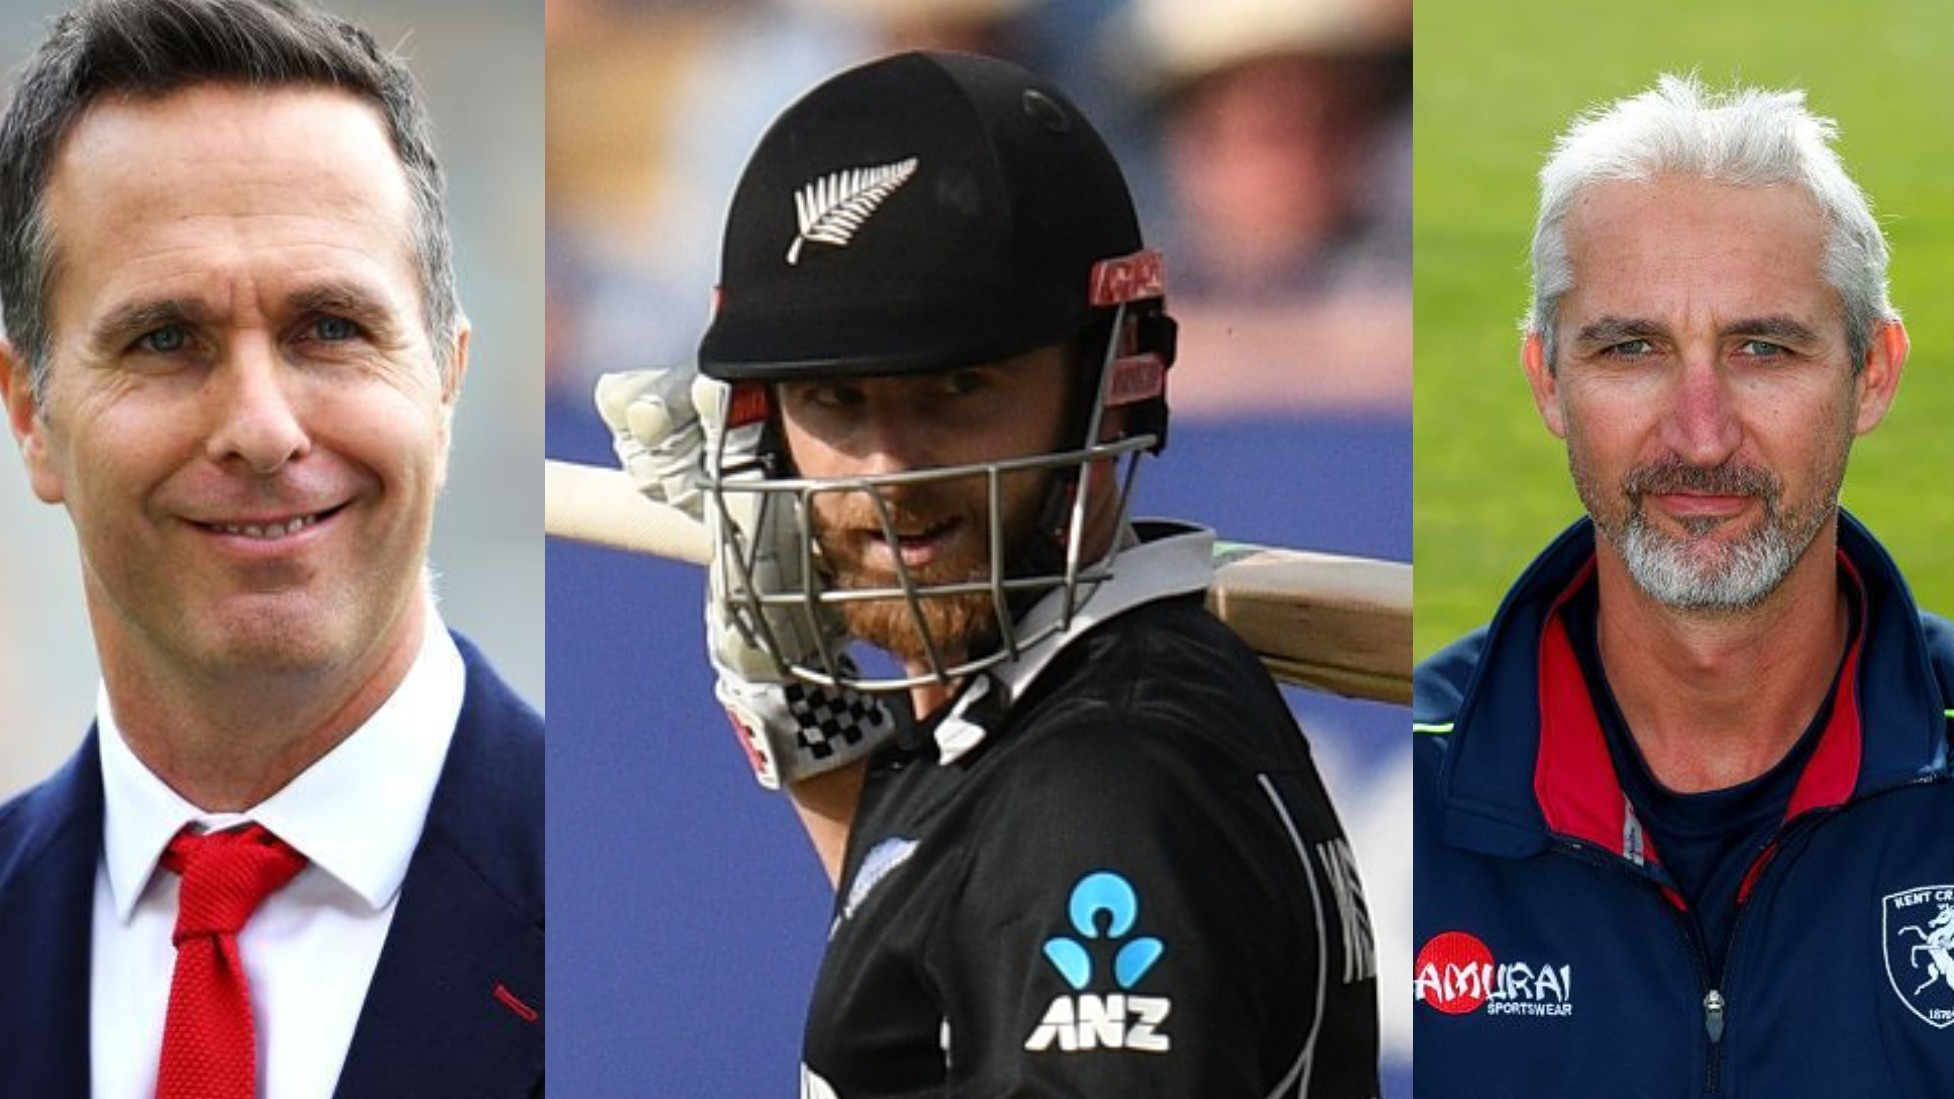 CWC 2019: Cricket fraternity lauds Kane Williamson as his 106* helps New Zealand win by 4-wickets in a nail biter